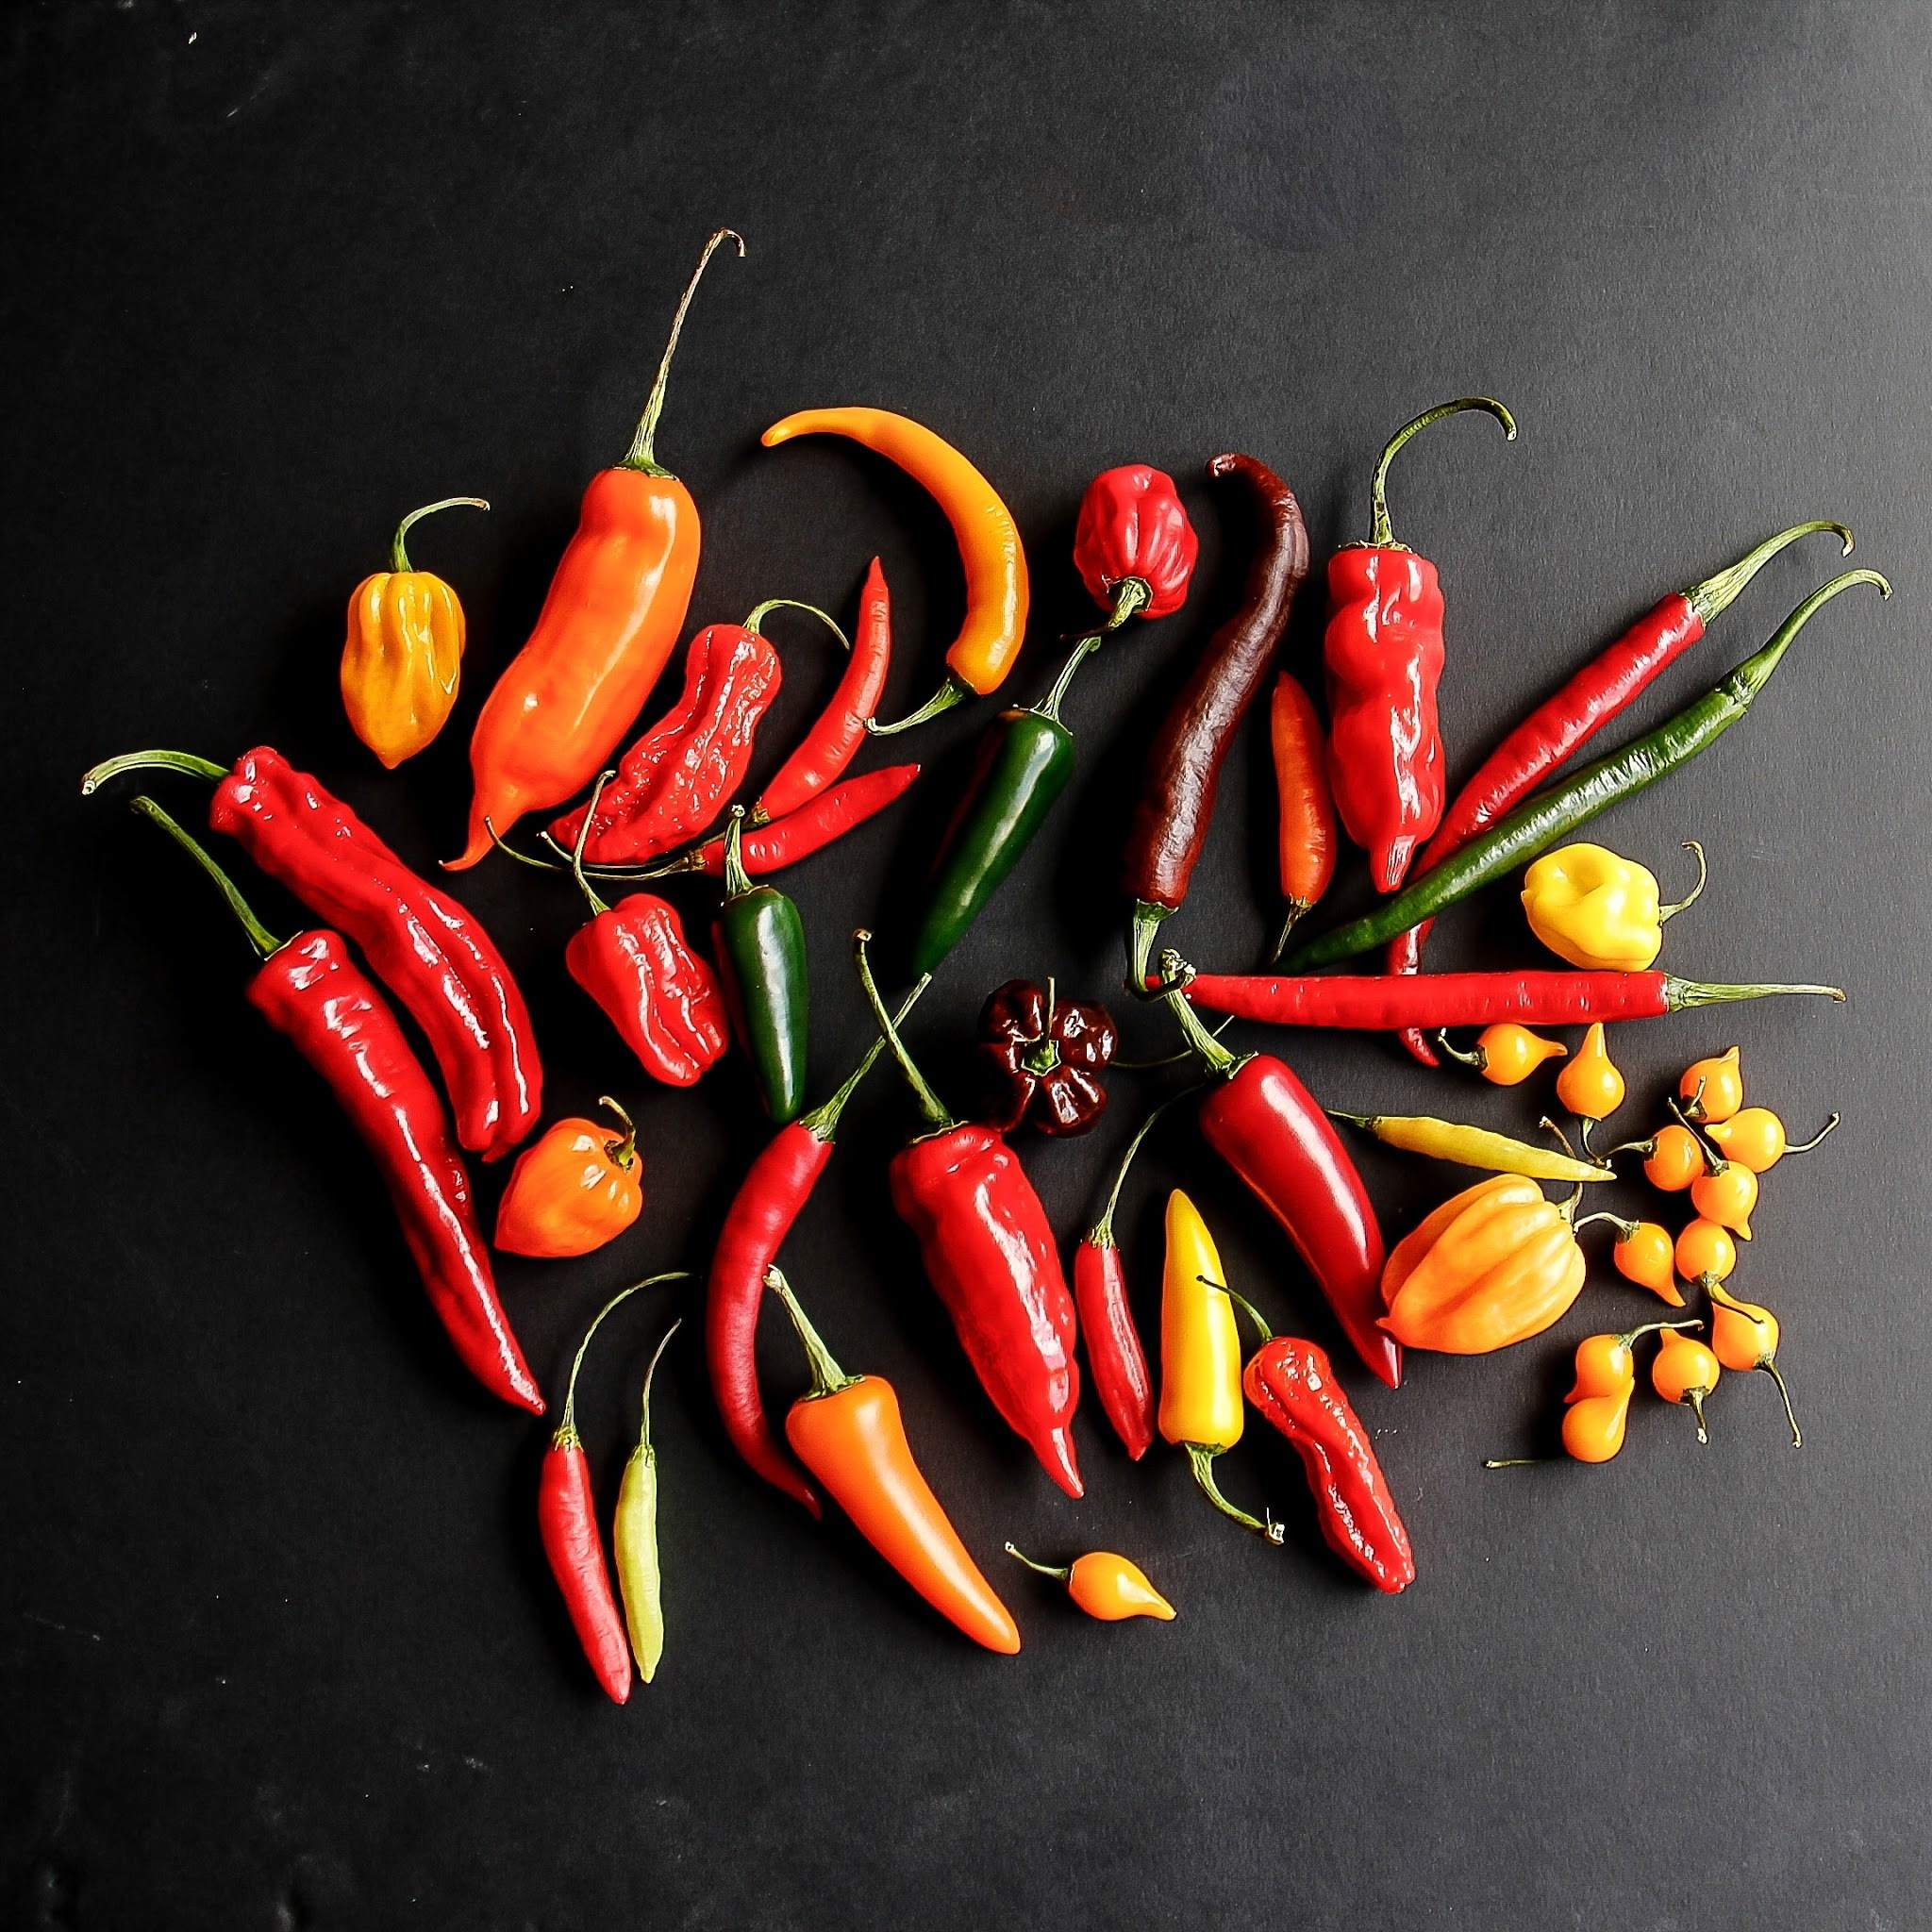 About chilli peppers and Homemade roasted chilli sauce recipe